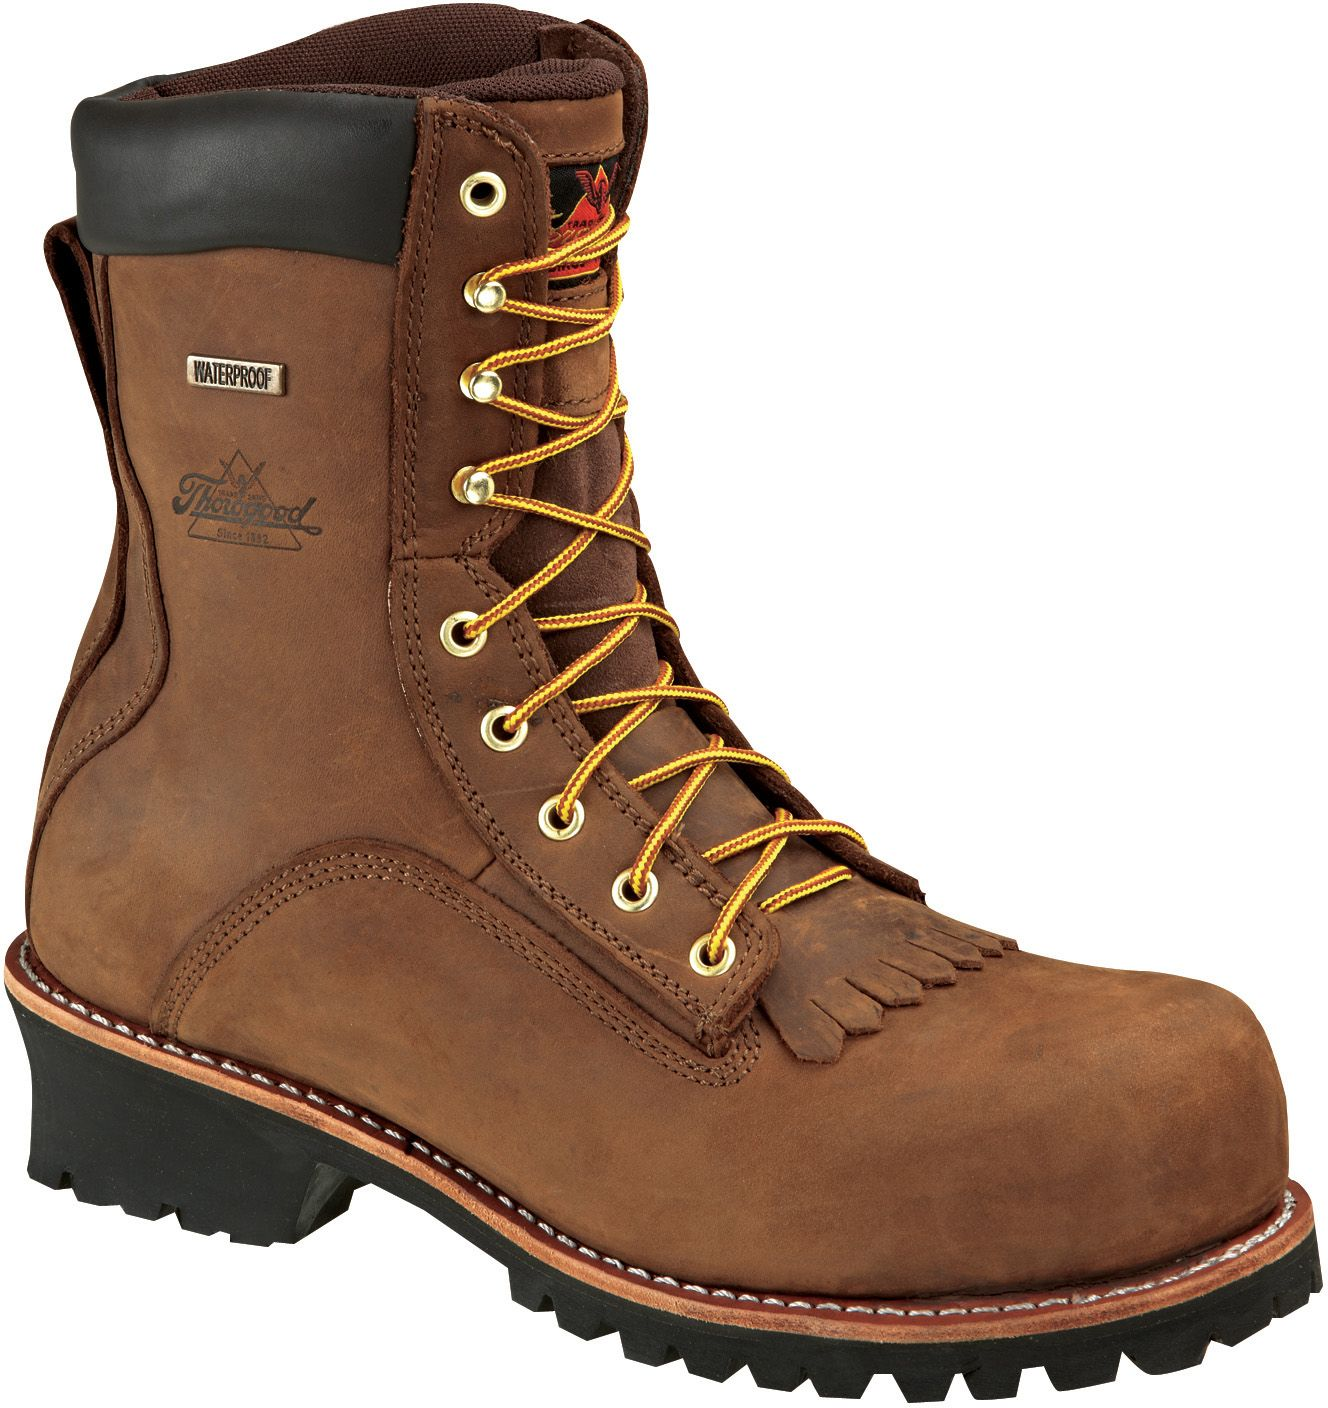 Work boots, Brown leather boots